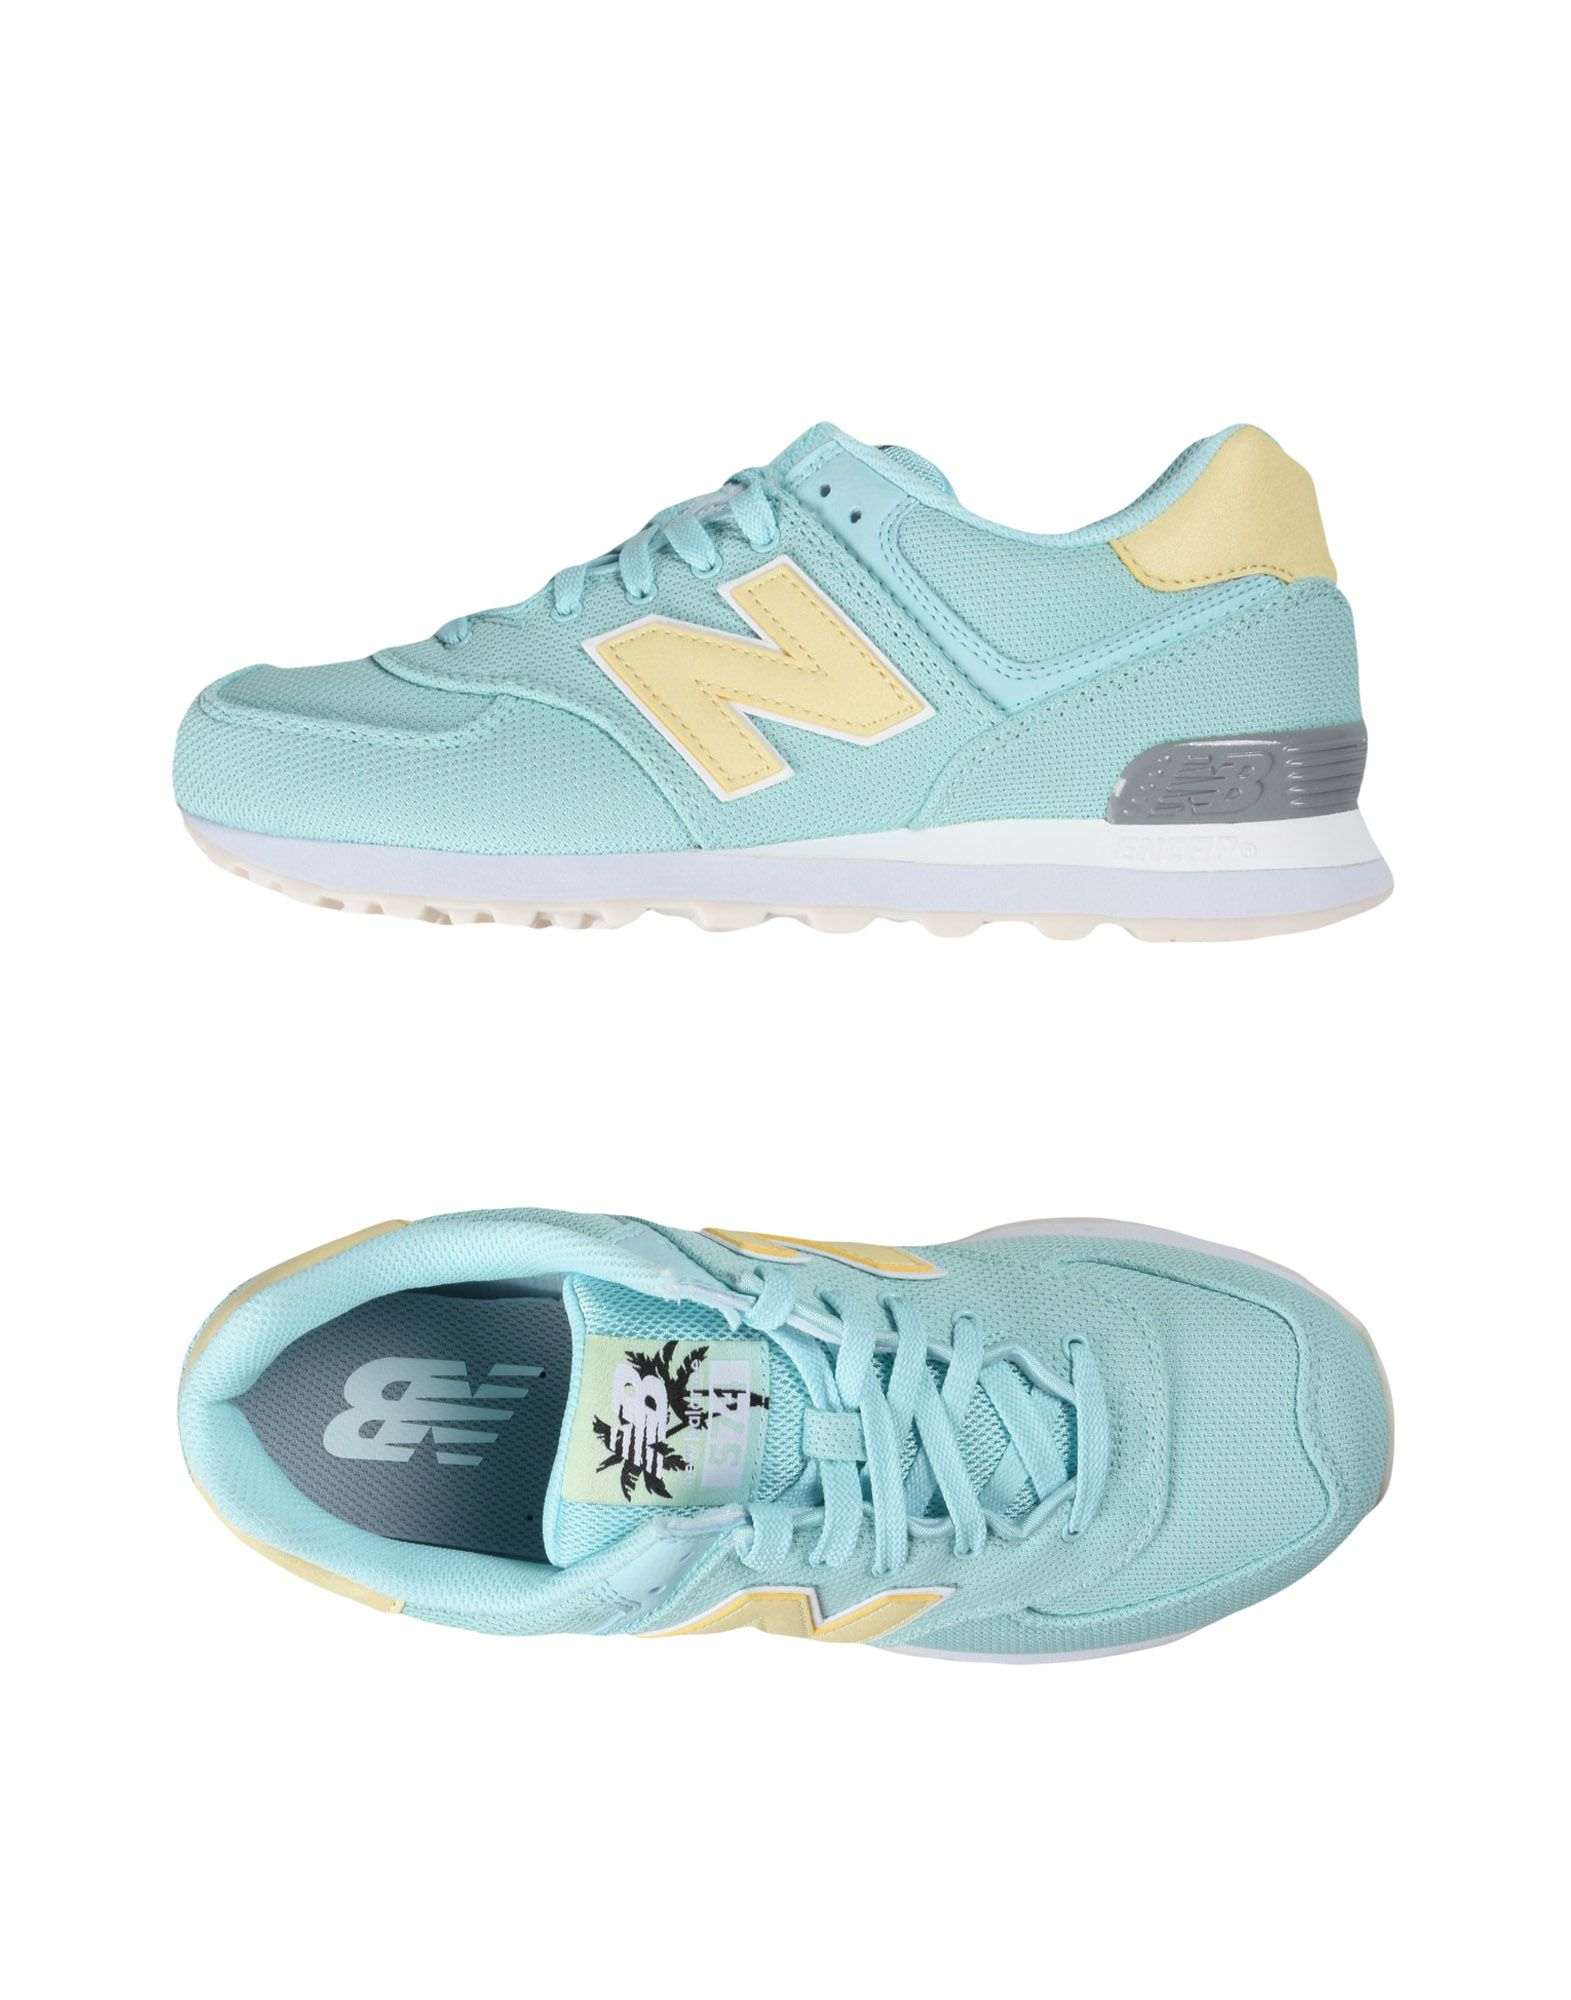 New Balance 574 Textile Women Bright - Sneakers - Women Textile New Balance Sneakers online on  Canada - 11264588DE 05c3de